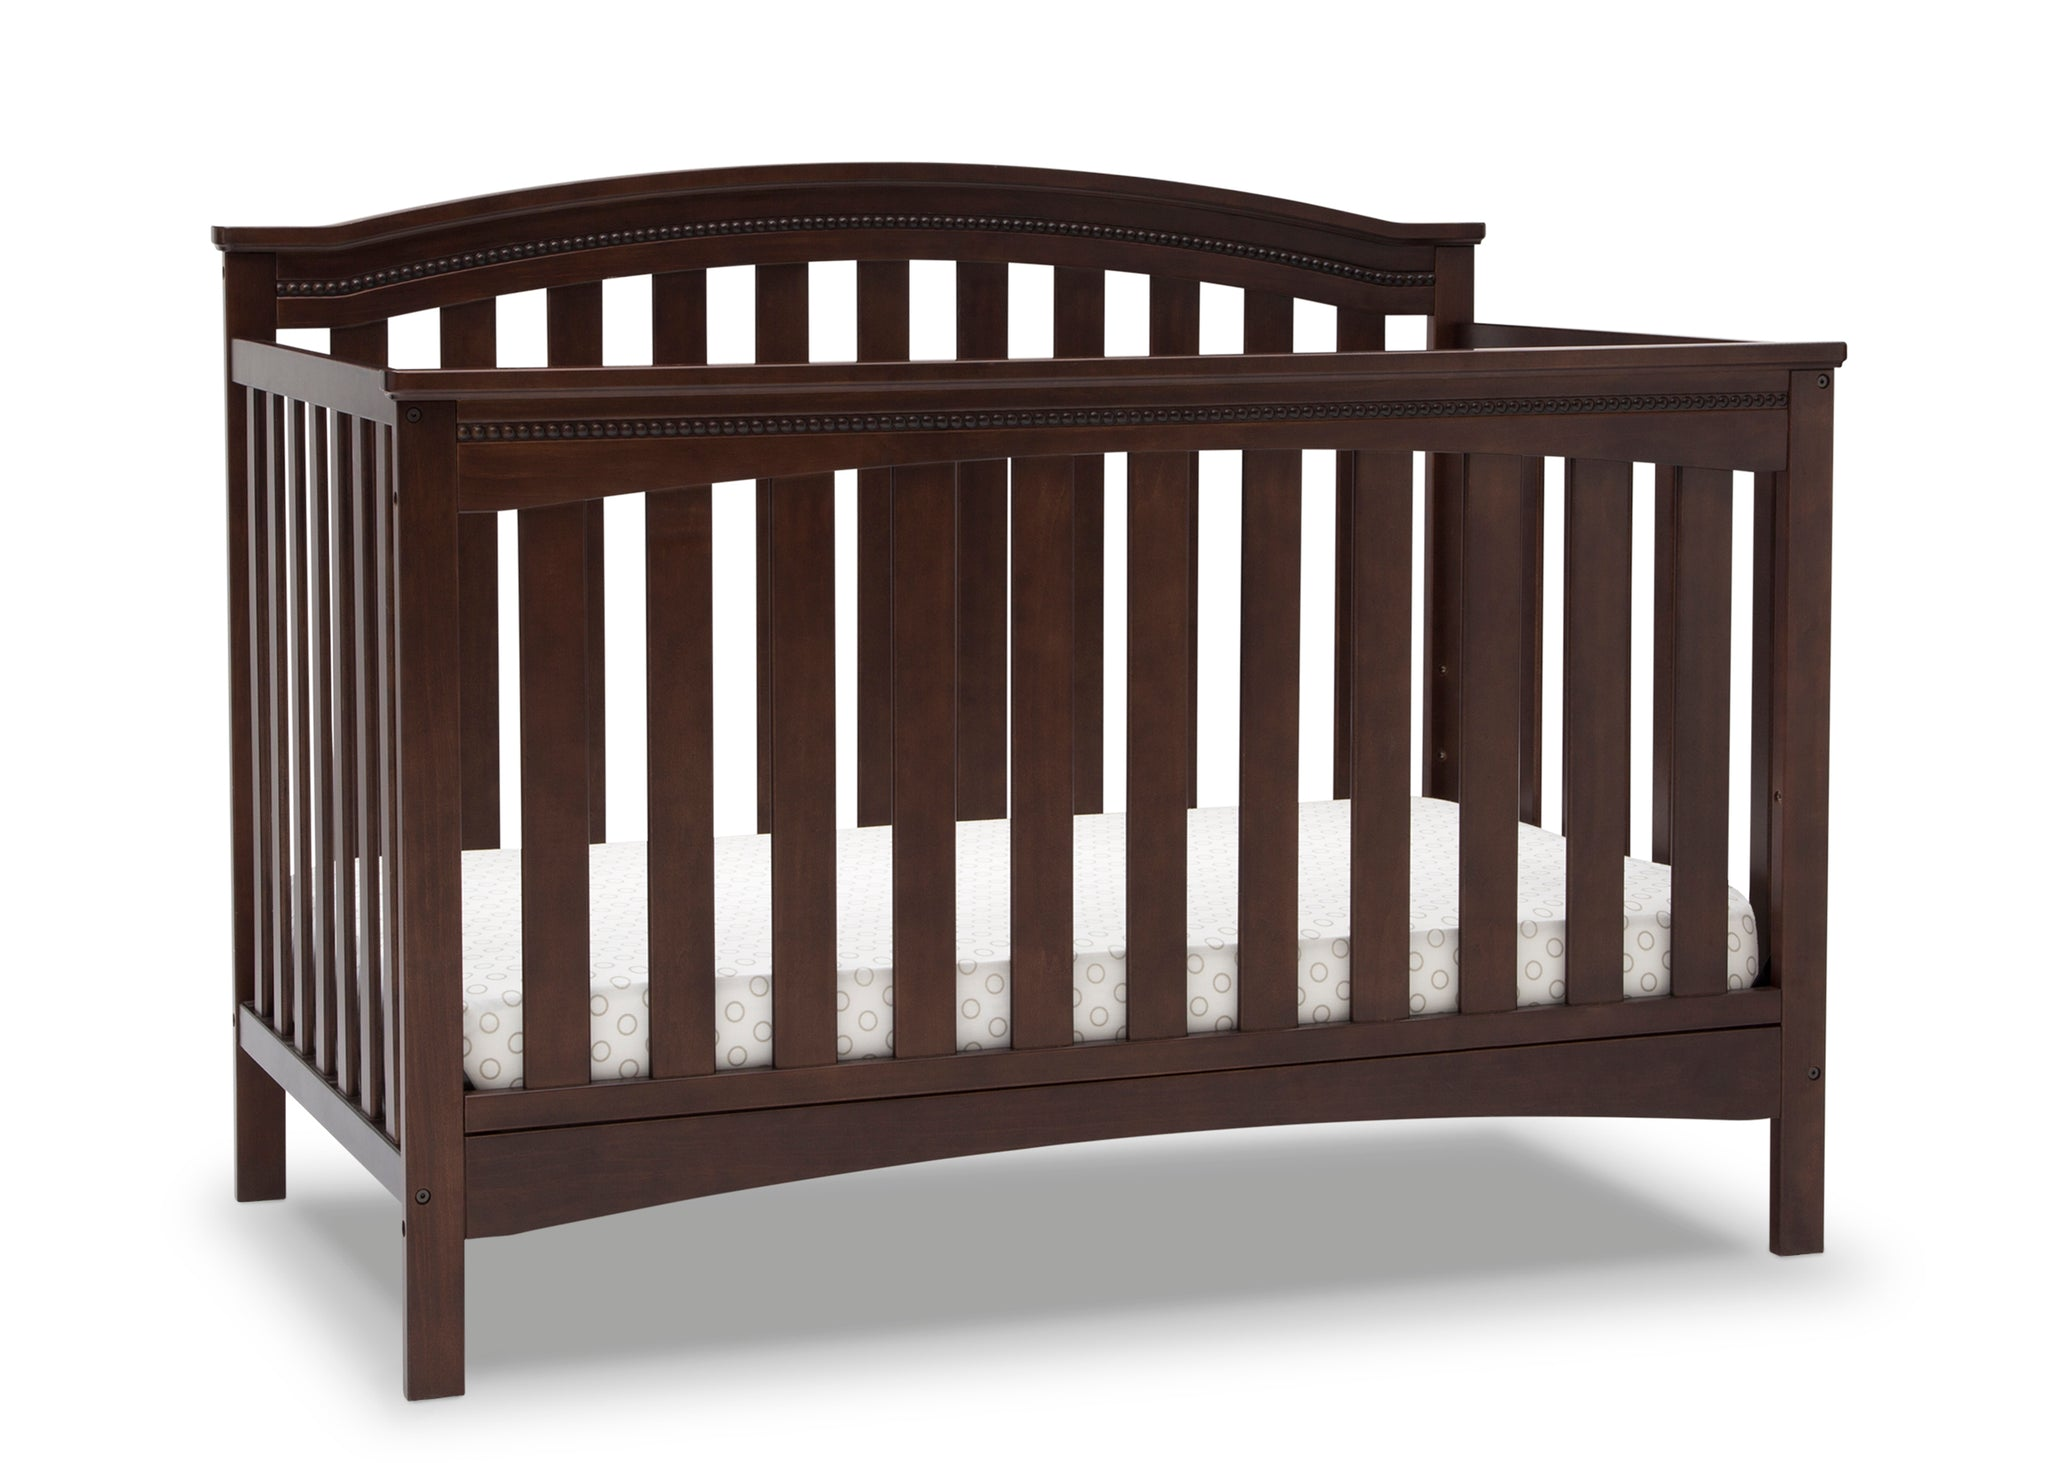 Delta Children Walnut Espresso (1324) Waverly 6-in-1 Convertible Crib, Right Crib Silo View